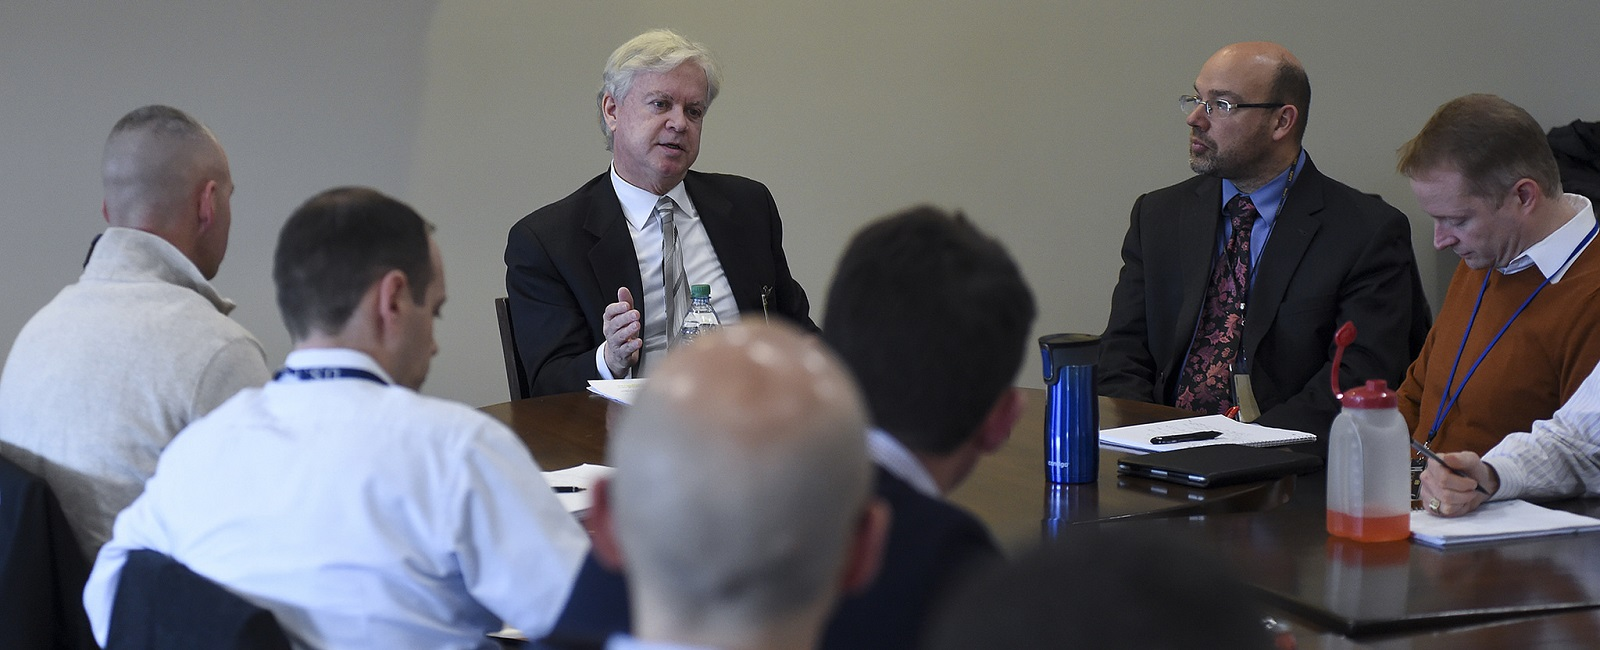 U.S. Naval War College (NWC) students and staff had the opportunity to observe how the world of national security looks from the boardroom when Philip O'Neill, one of the country's leading international business arbiters (and the former Nomura Lecturer in Law on International Arbitration at Harvard Law School) spoke on the intersection of international business and national security during a lecture of opportunity at NWC in Newport, Rhode Island.